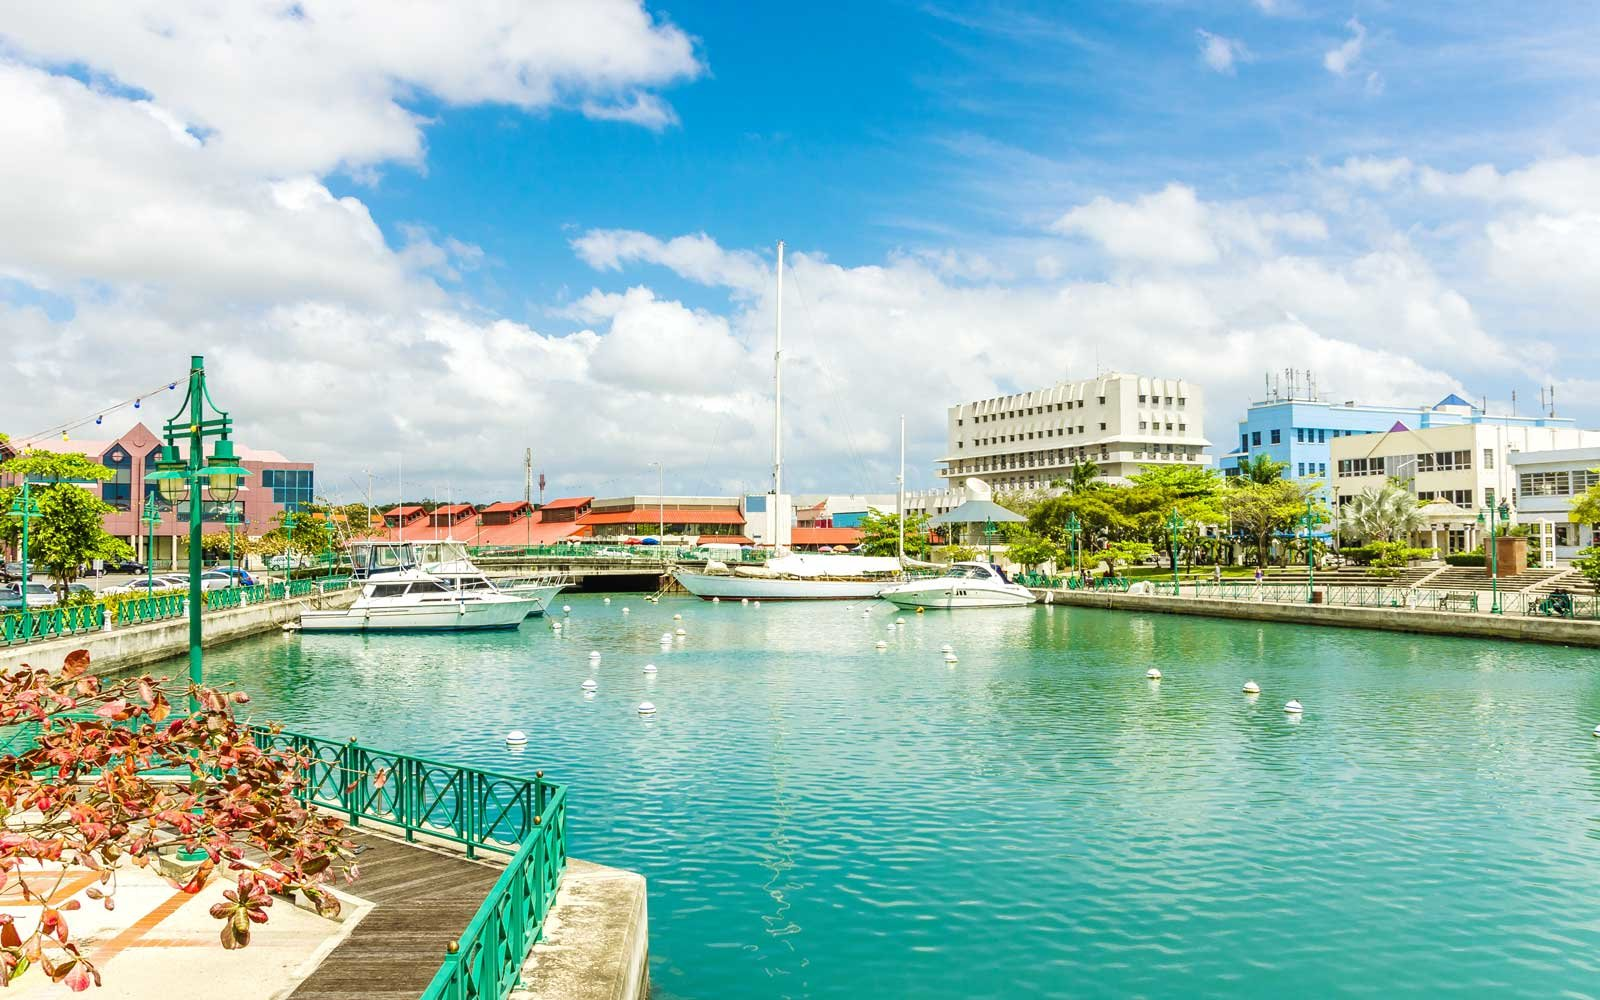 View of Bridgetown Harbour, Barbados